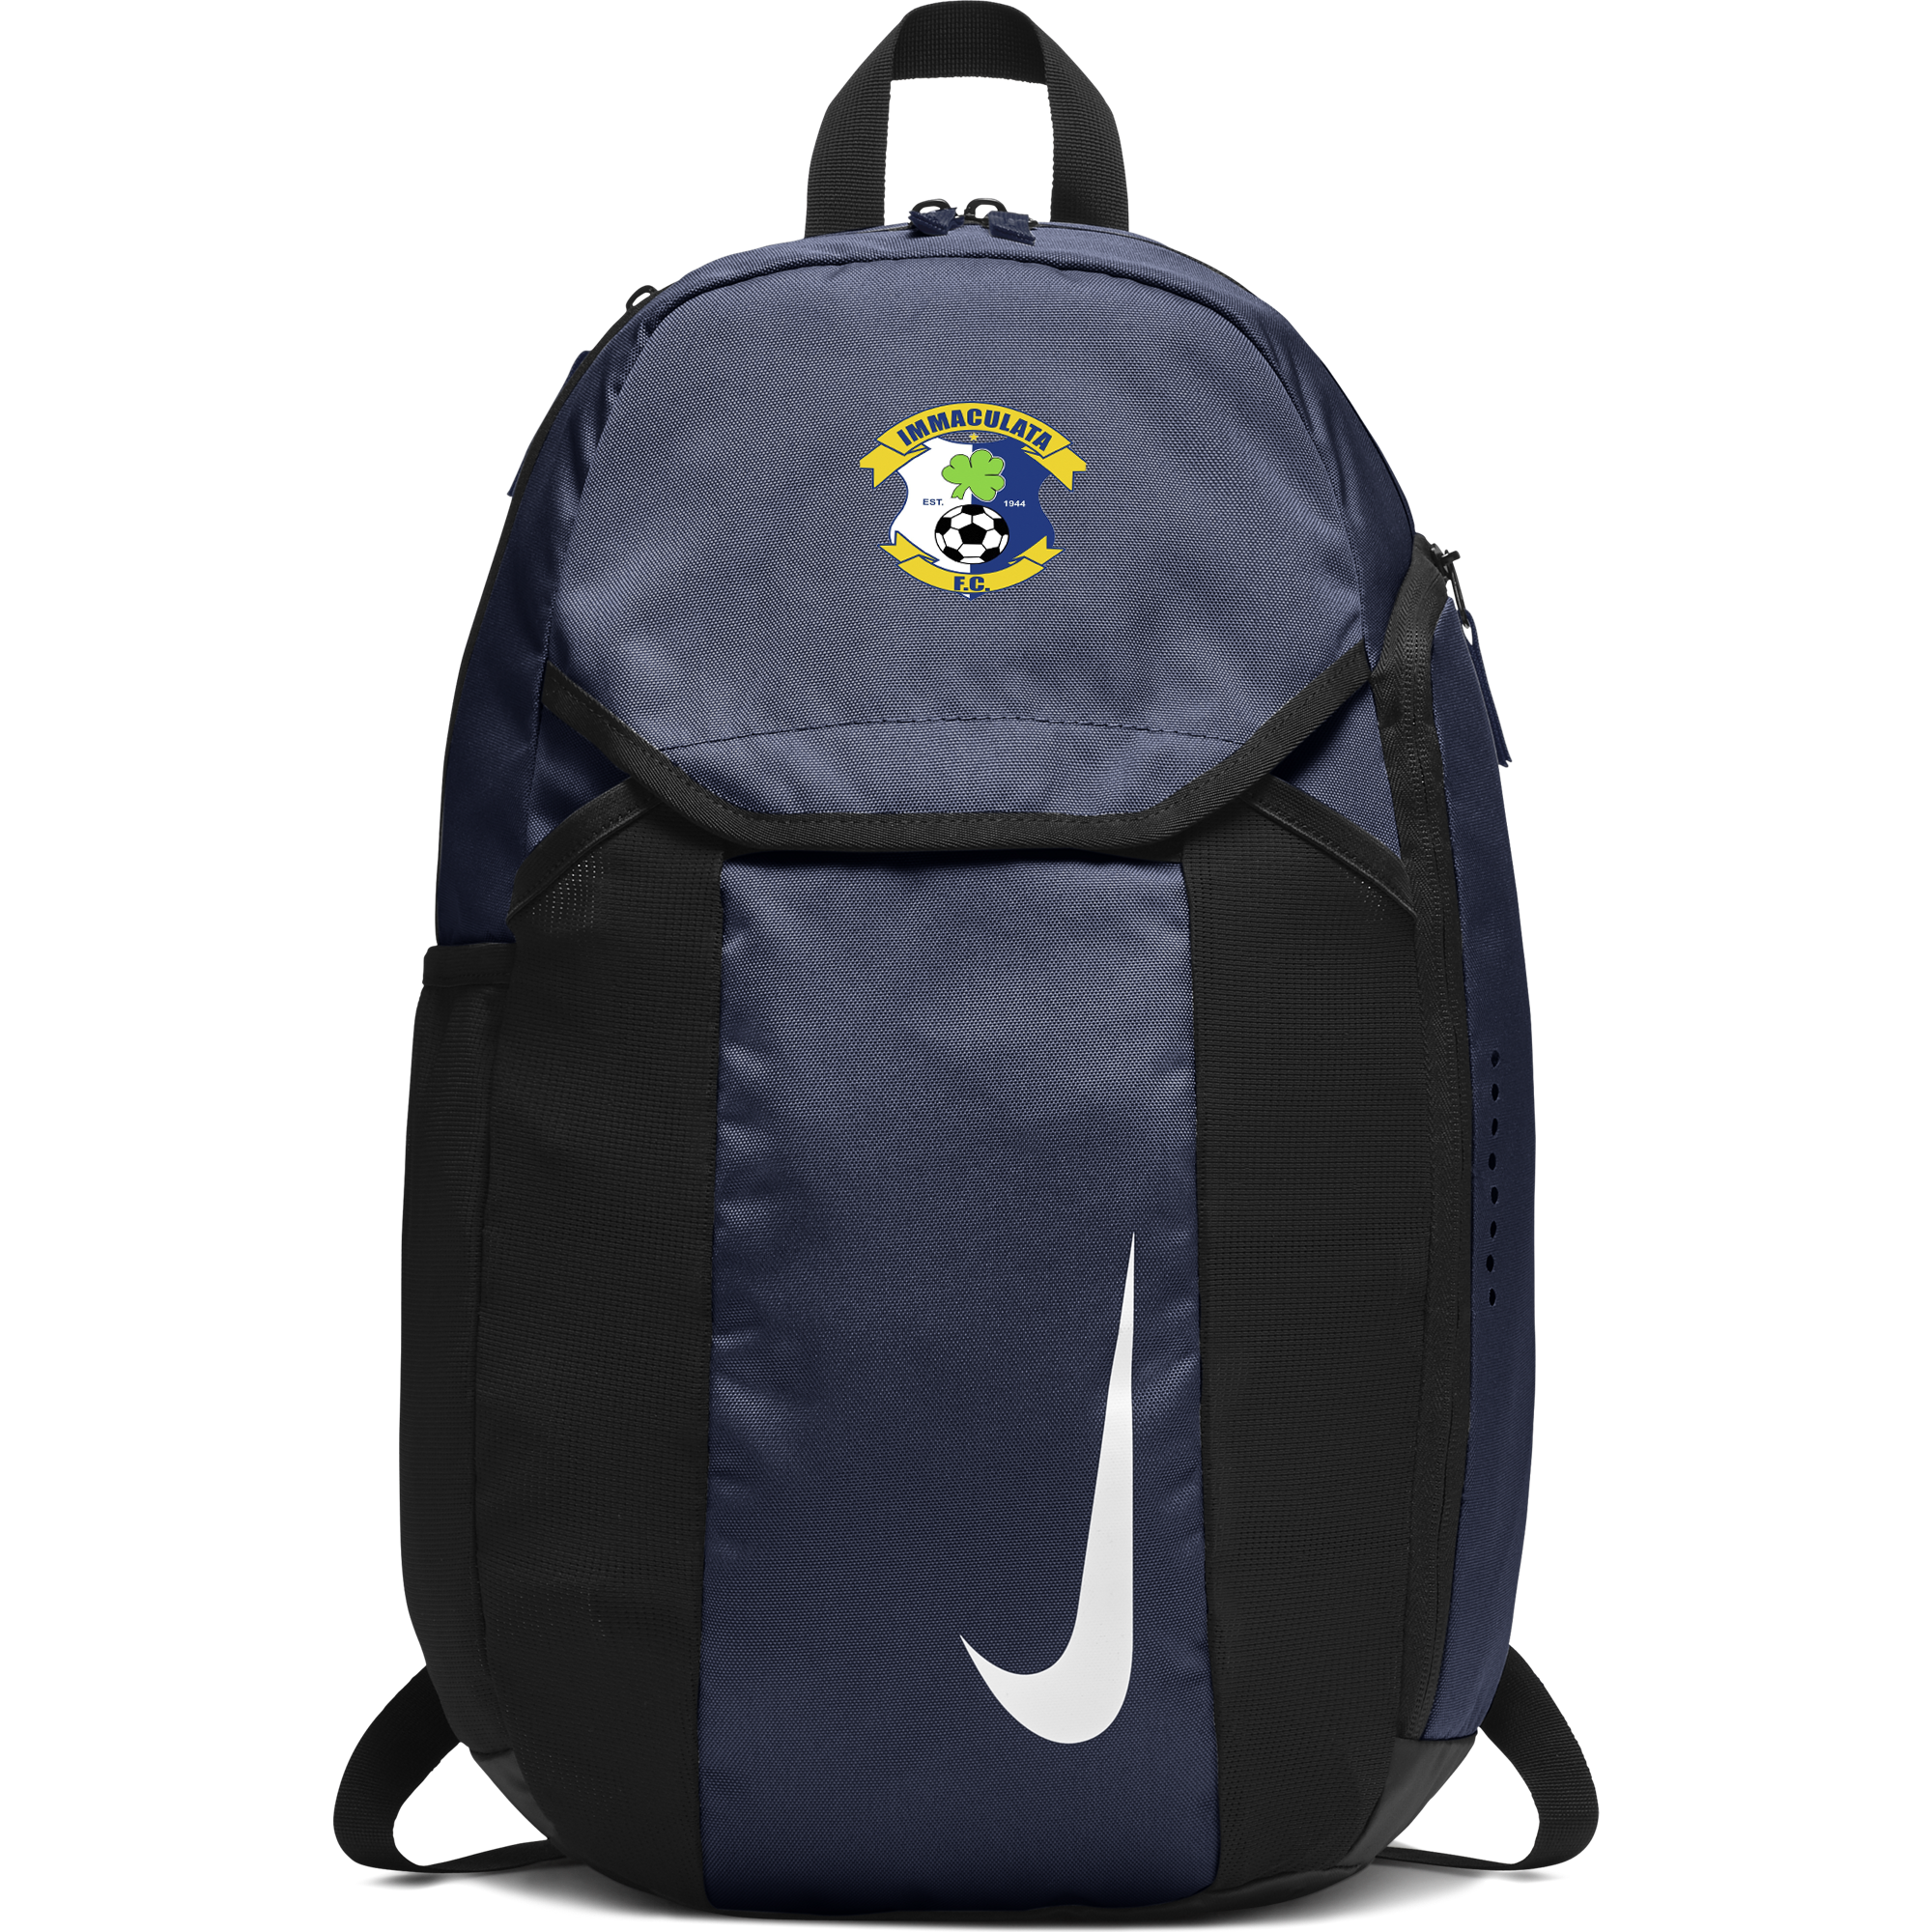 immaculata fc back pack 36160 p